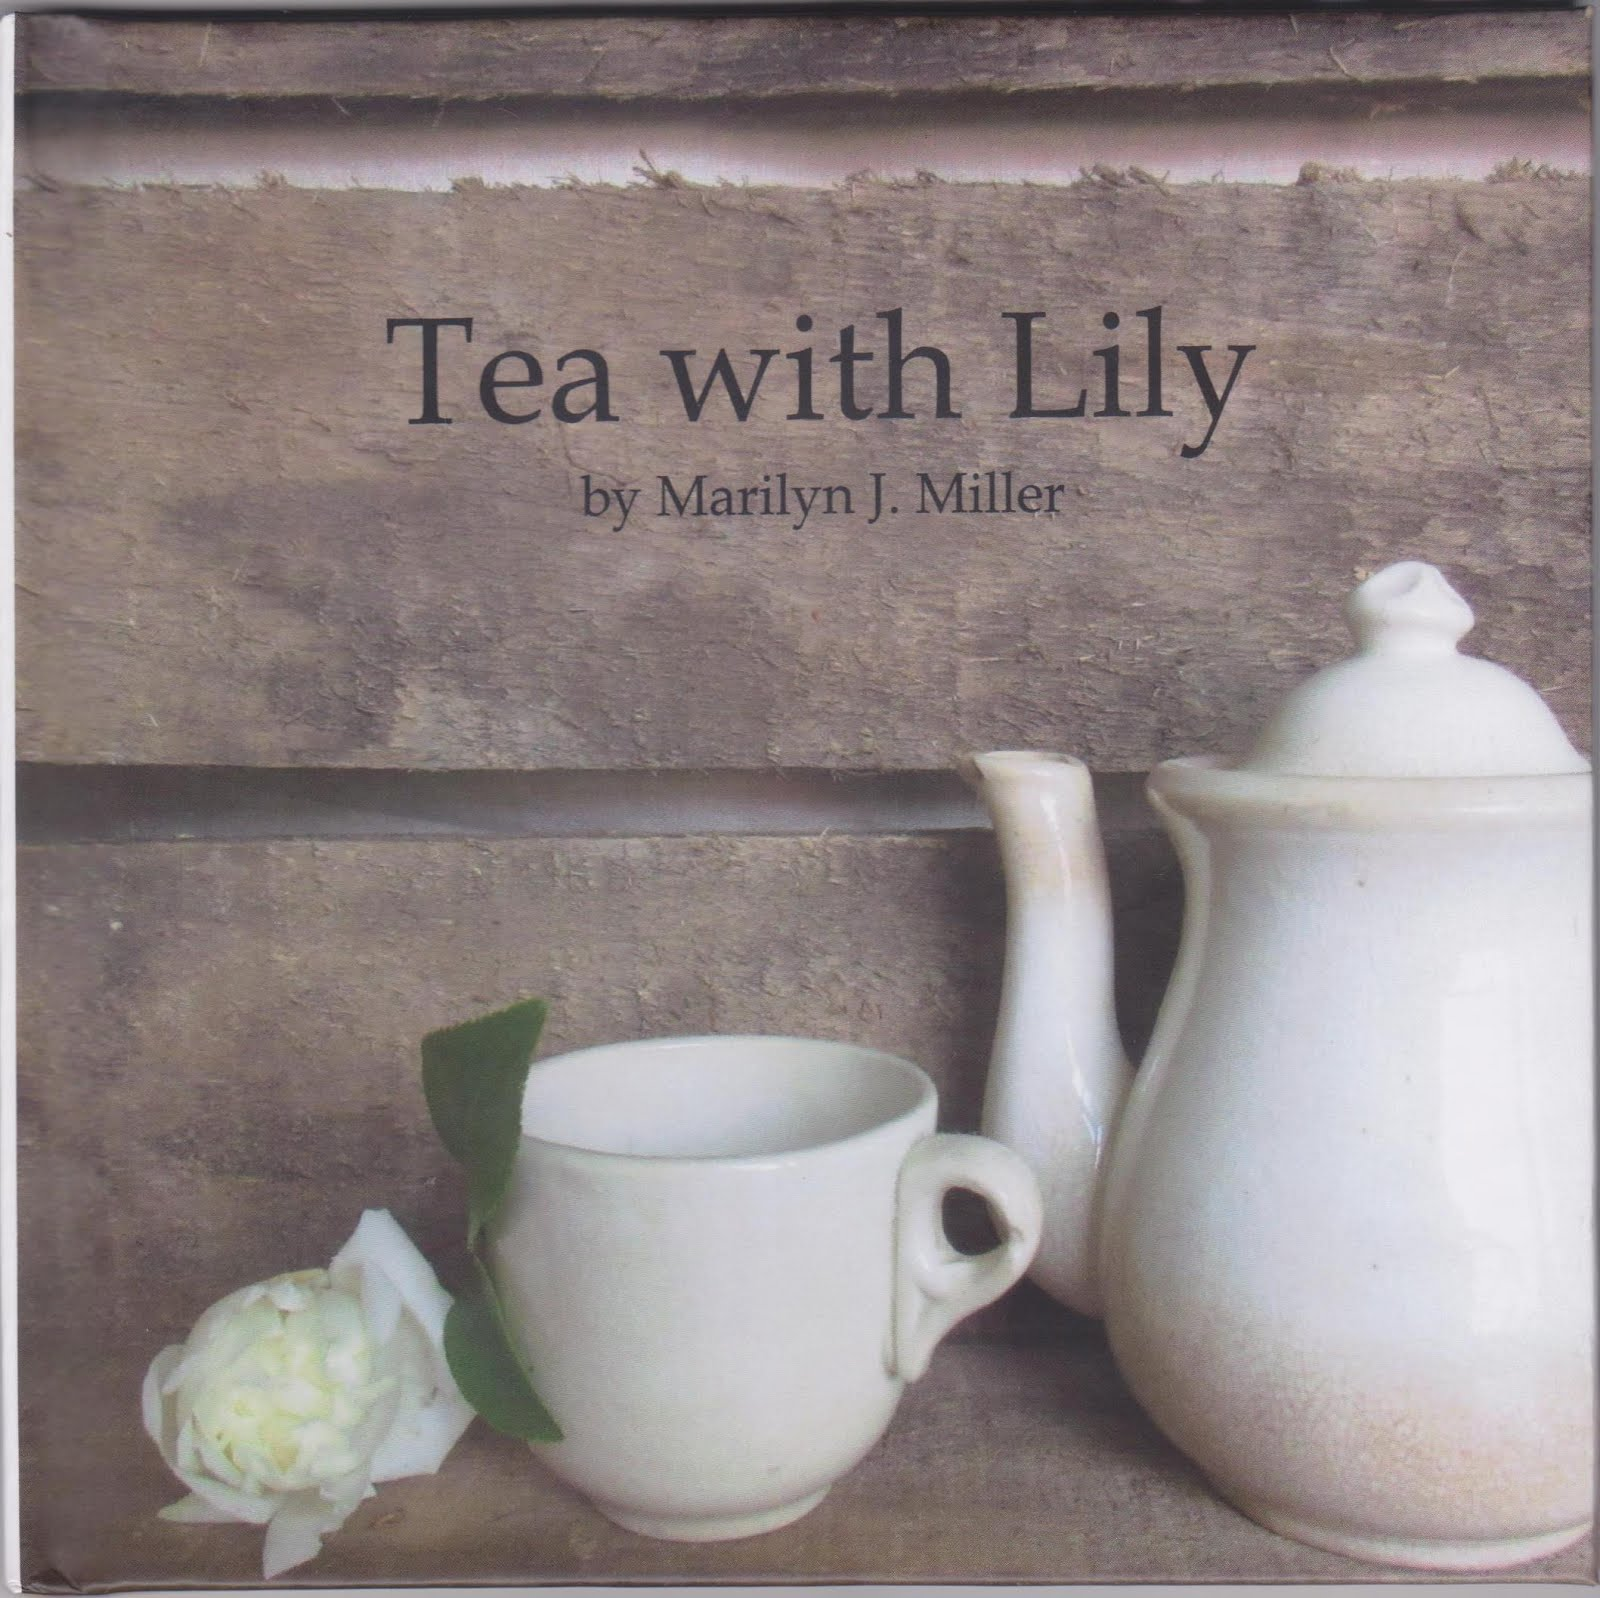 Tea Party in your Cupboard, Tea Outdoors, Tea with Lily